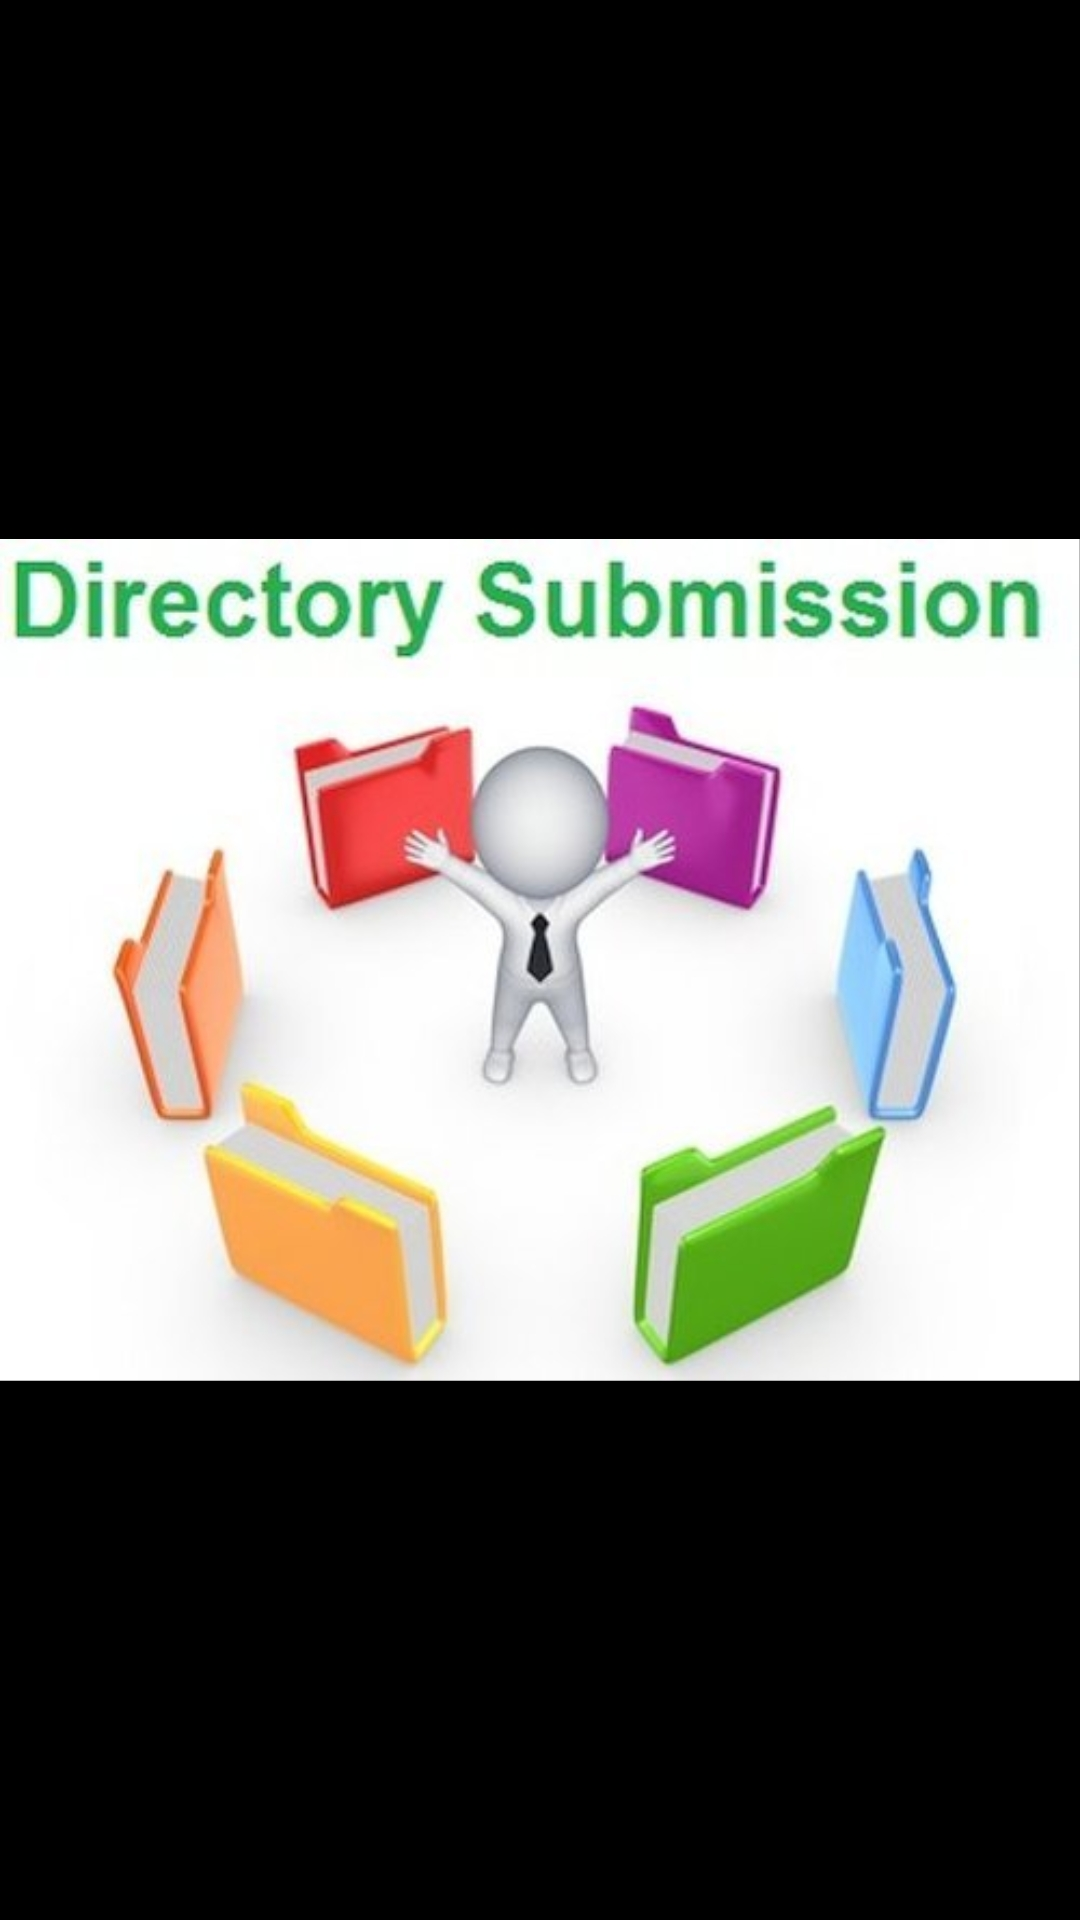 I can do 500 High-Quality Directory Submission Bookmarks For Your Website In 12 Hours